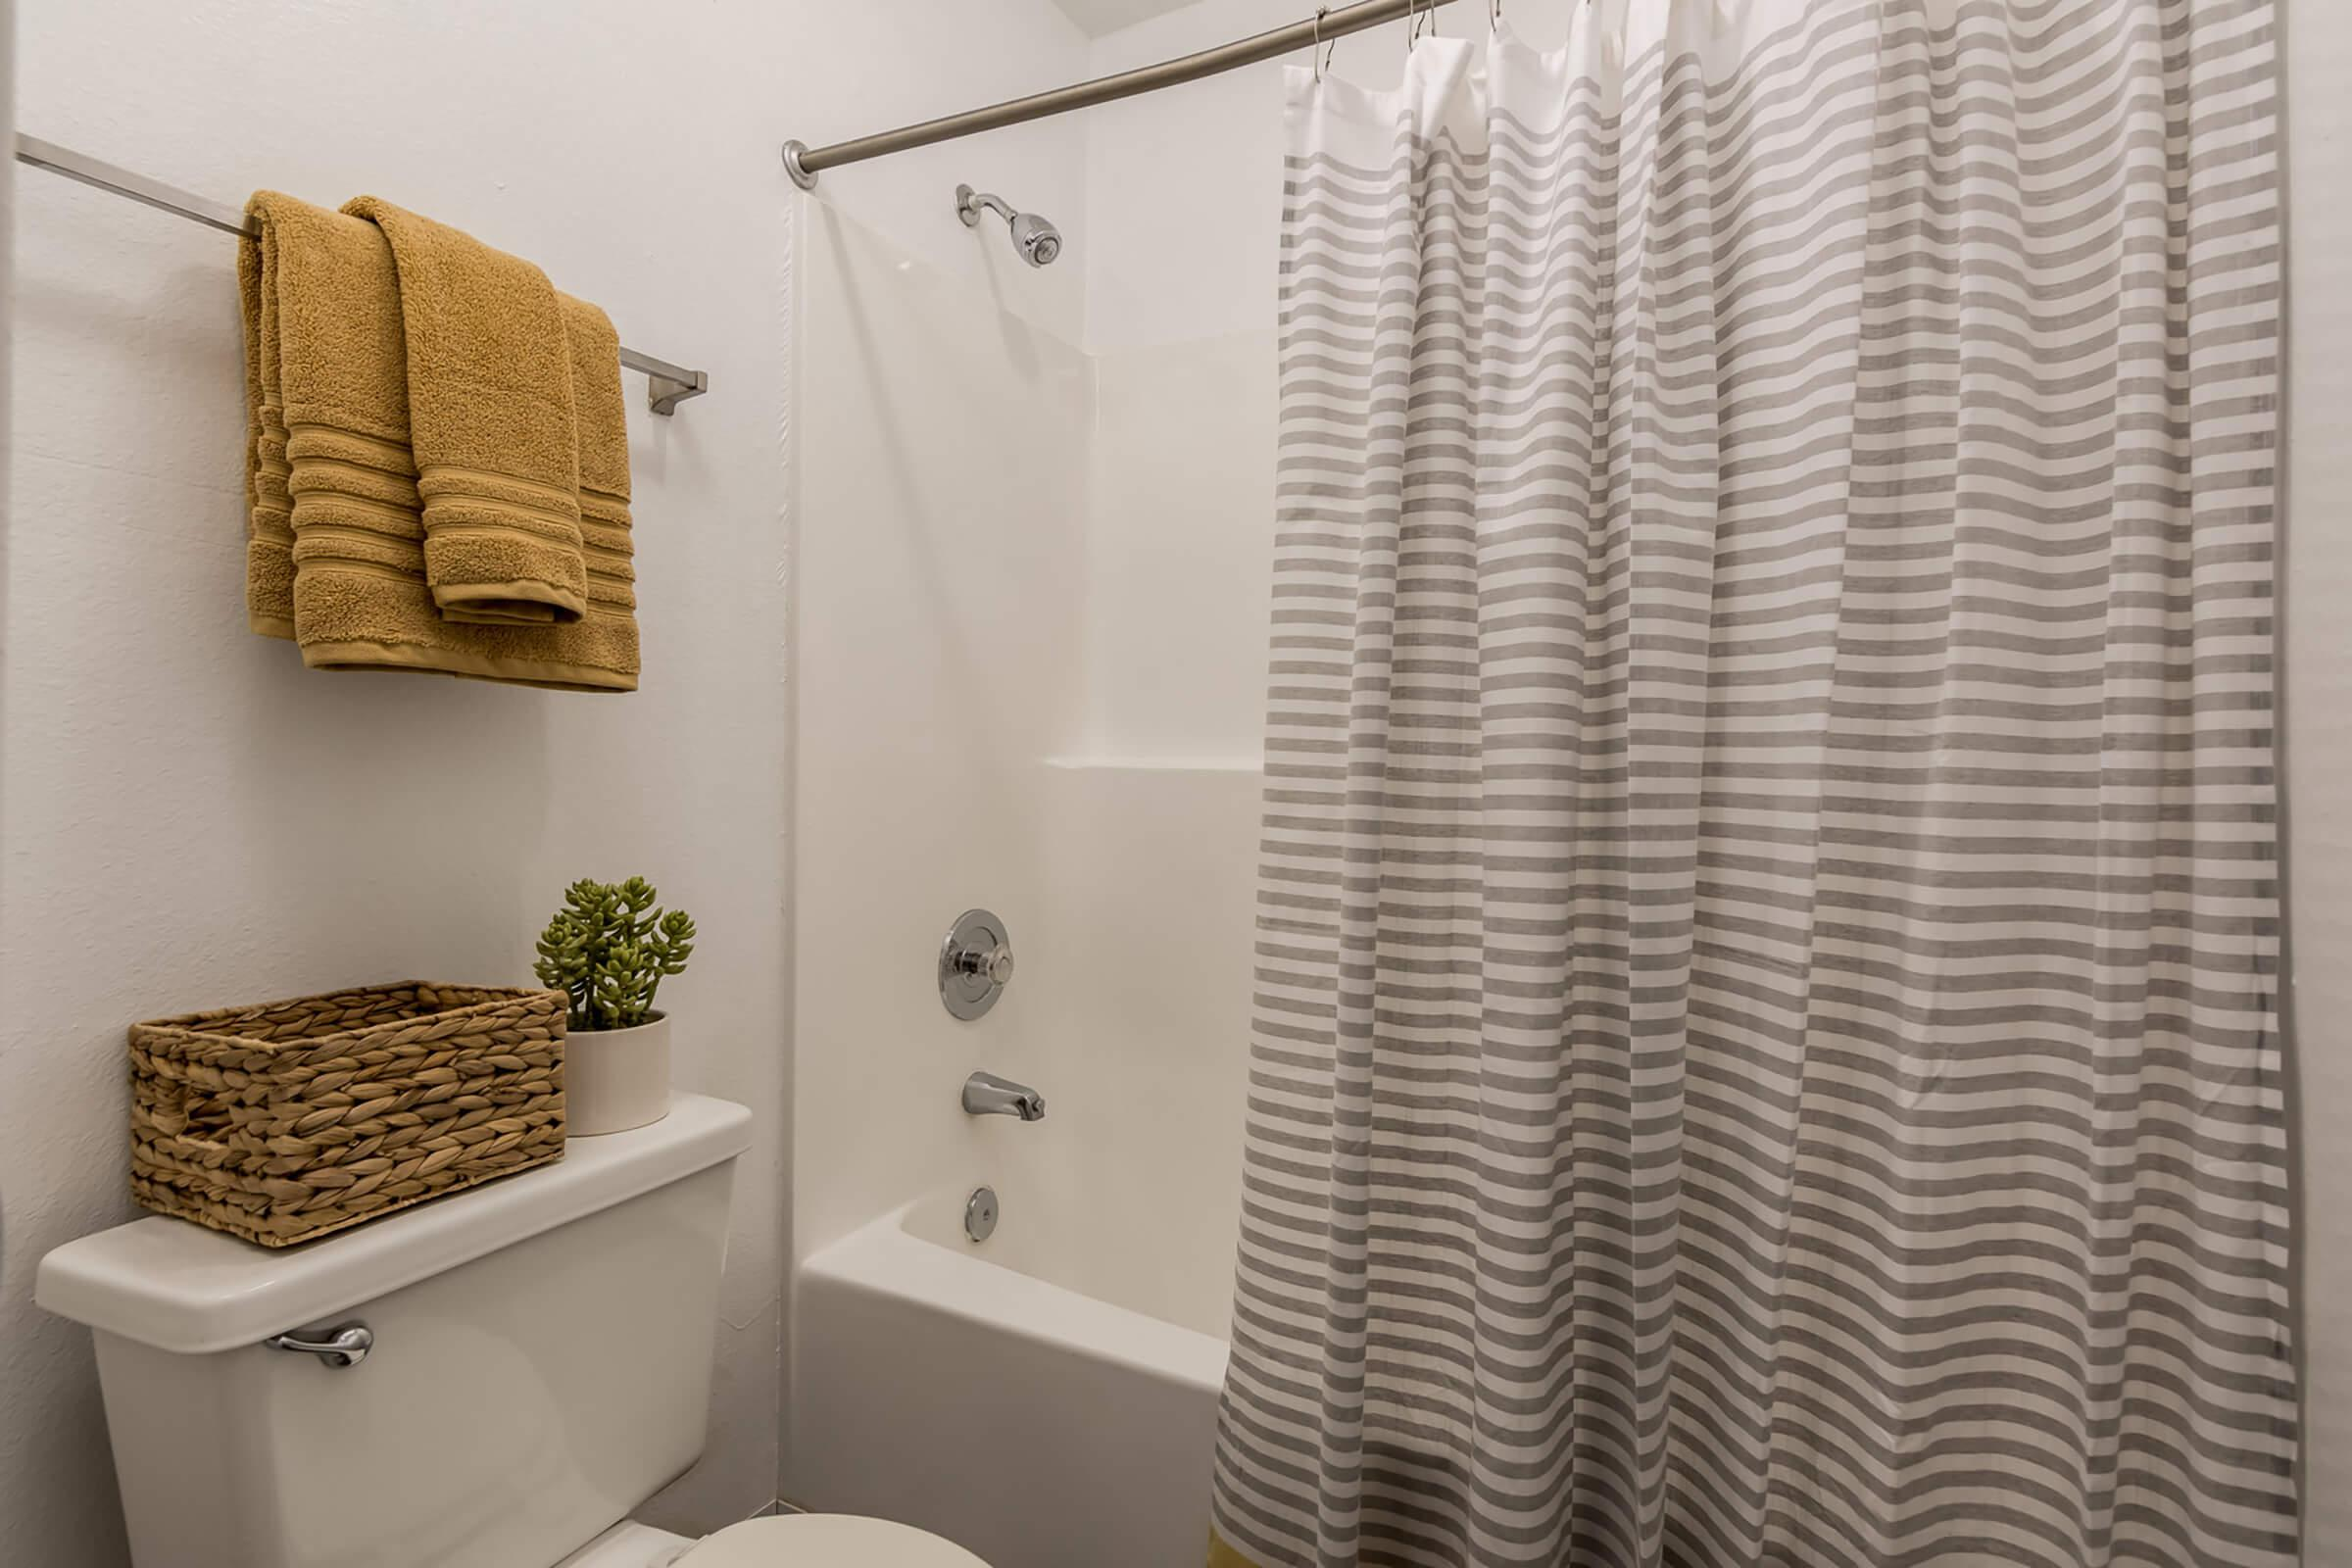 a room with a sink mirror and shower curtain